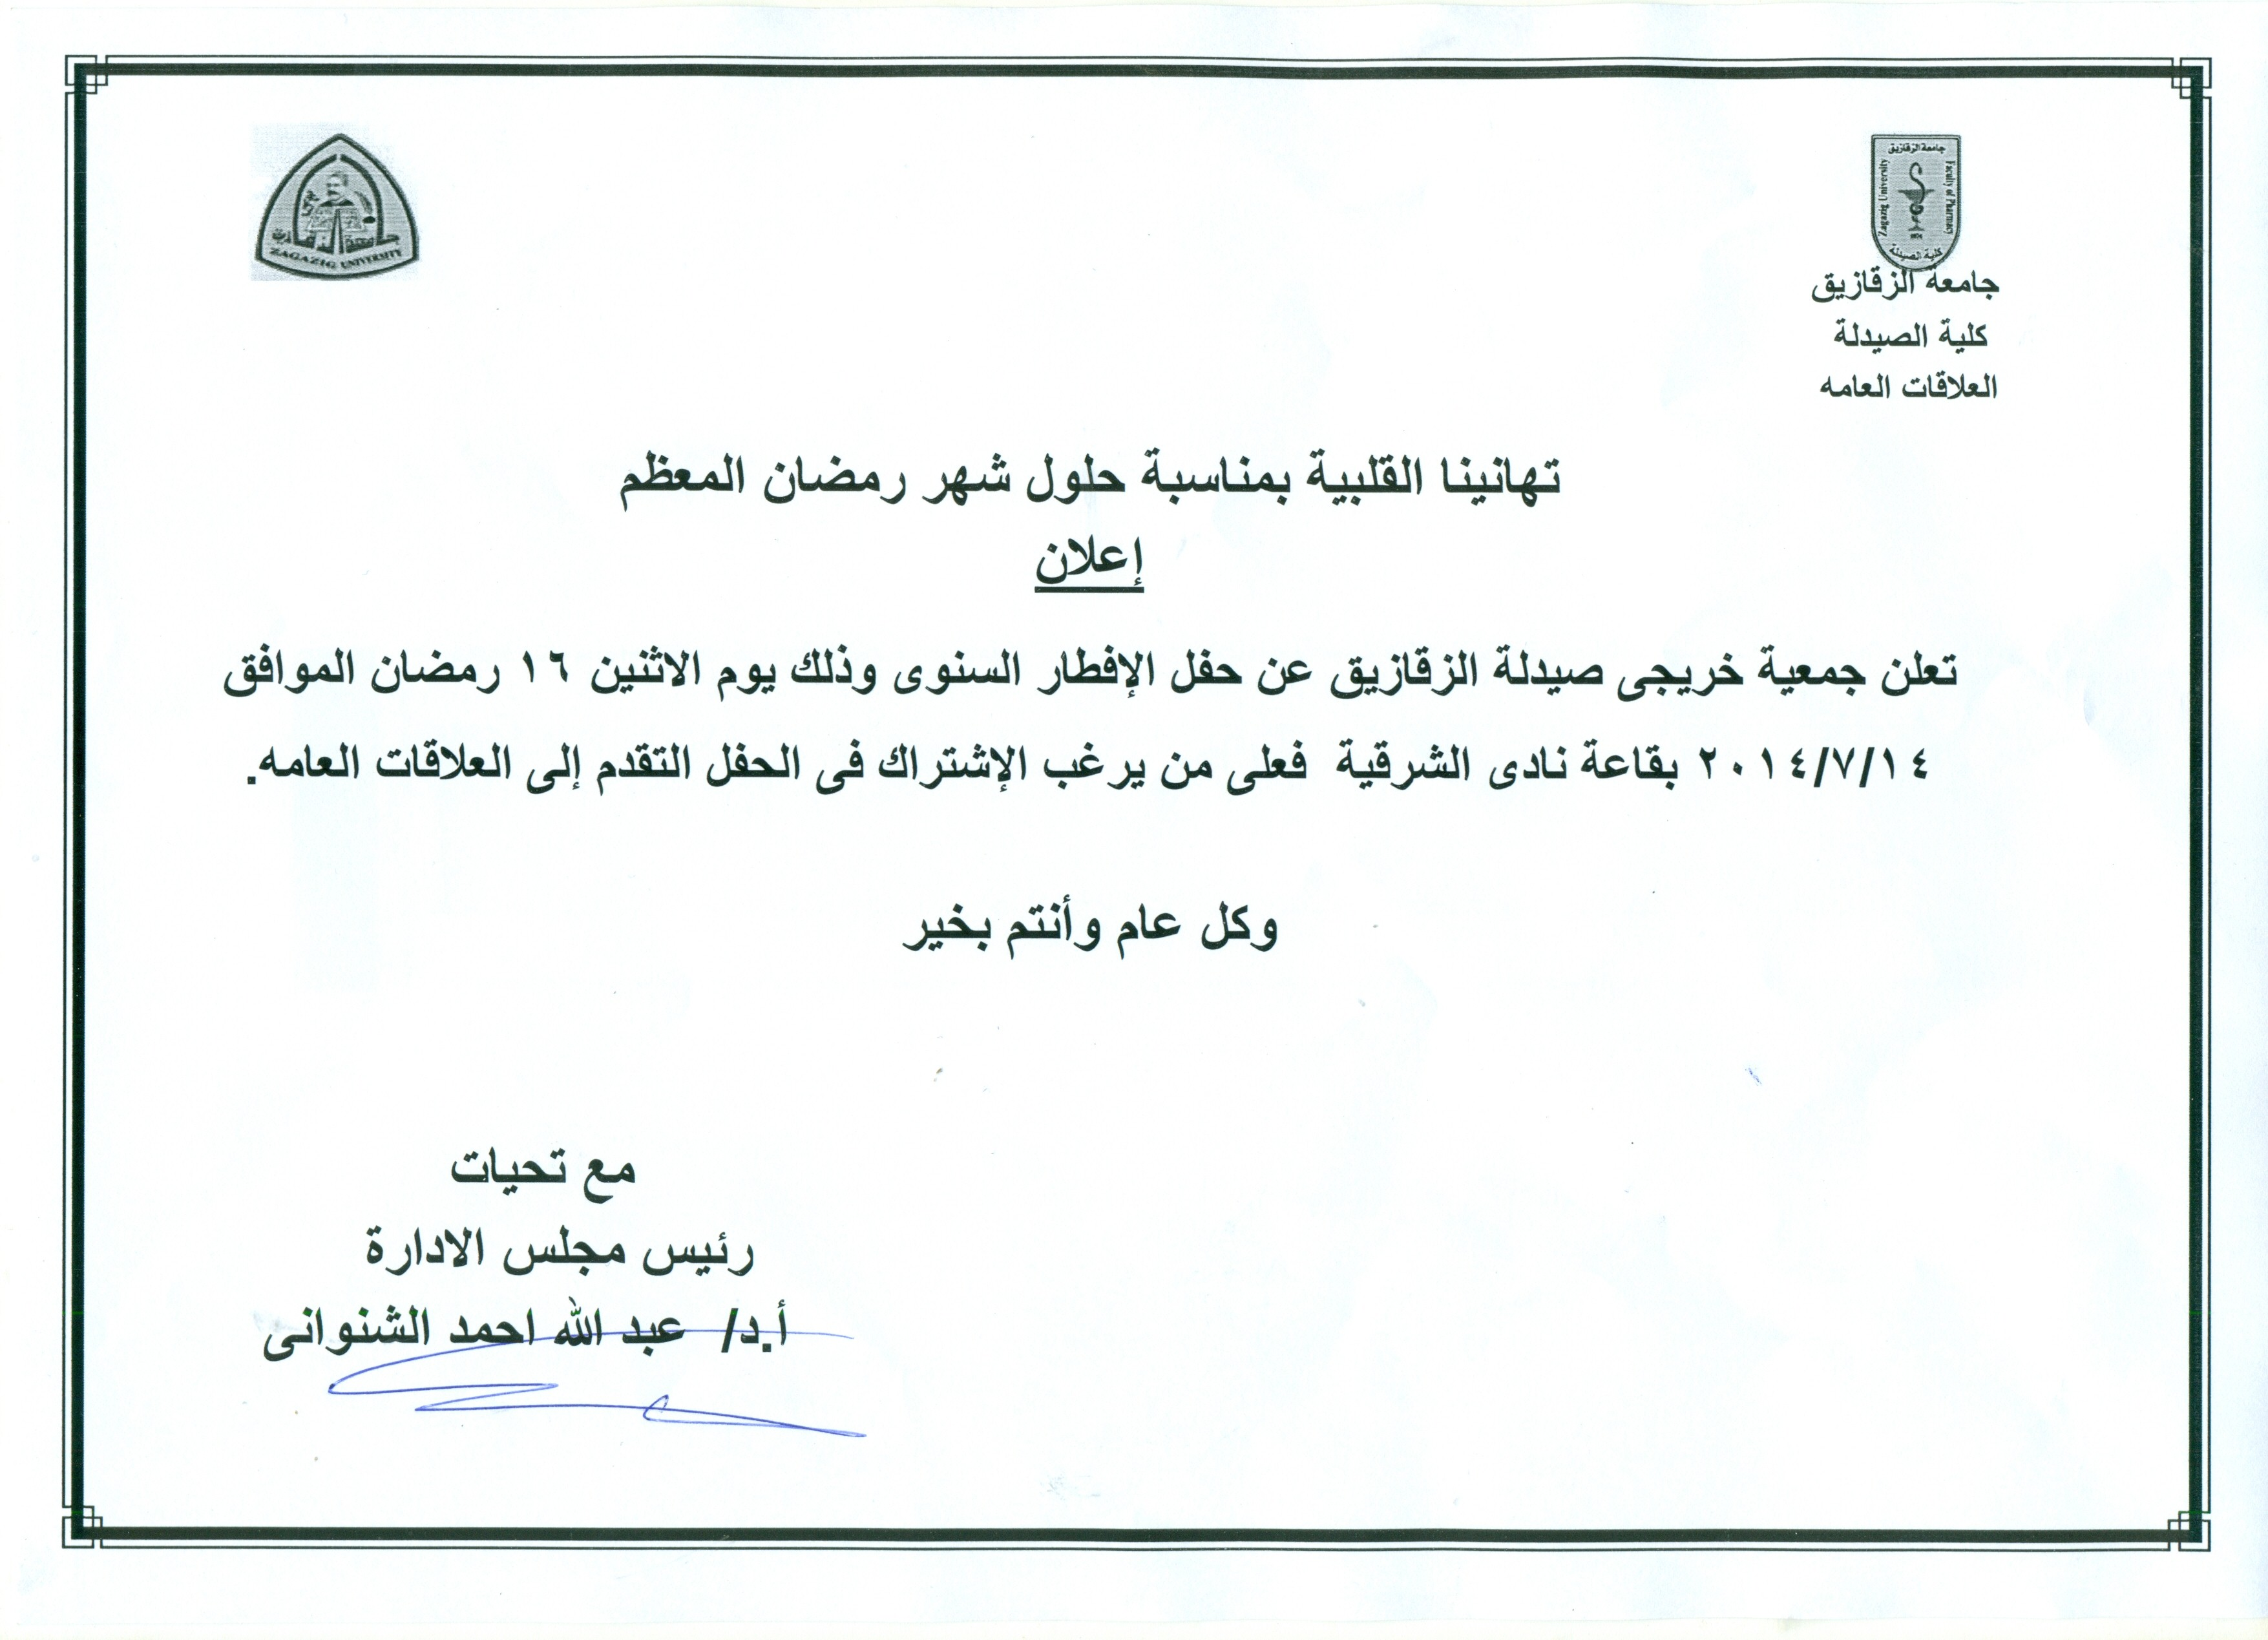 Announce the annual Iftar on Monday, September 16, 07/04/2014